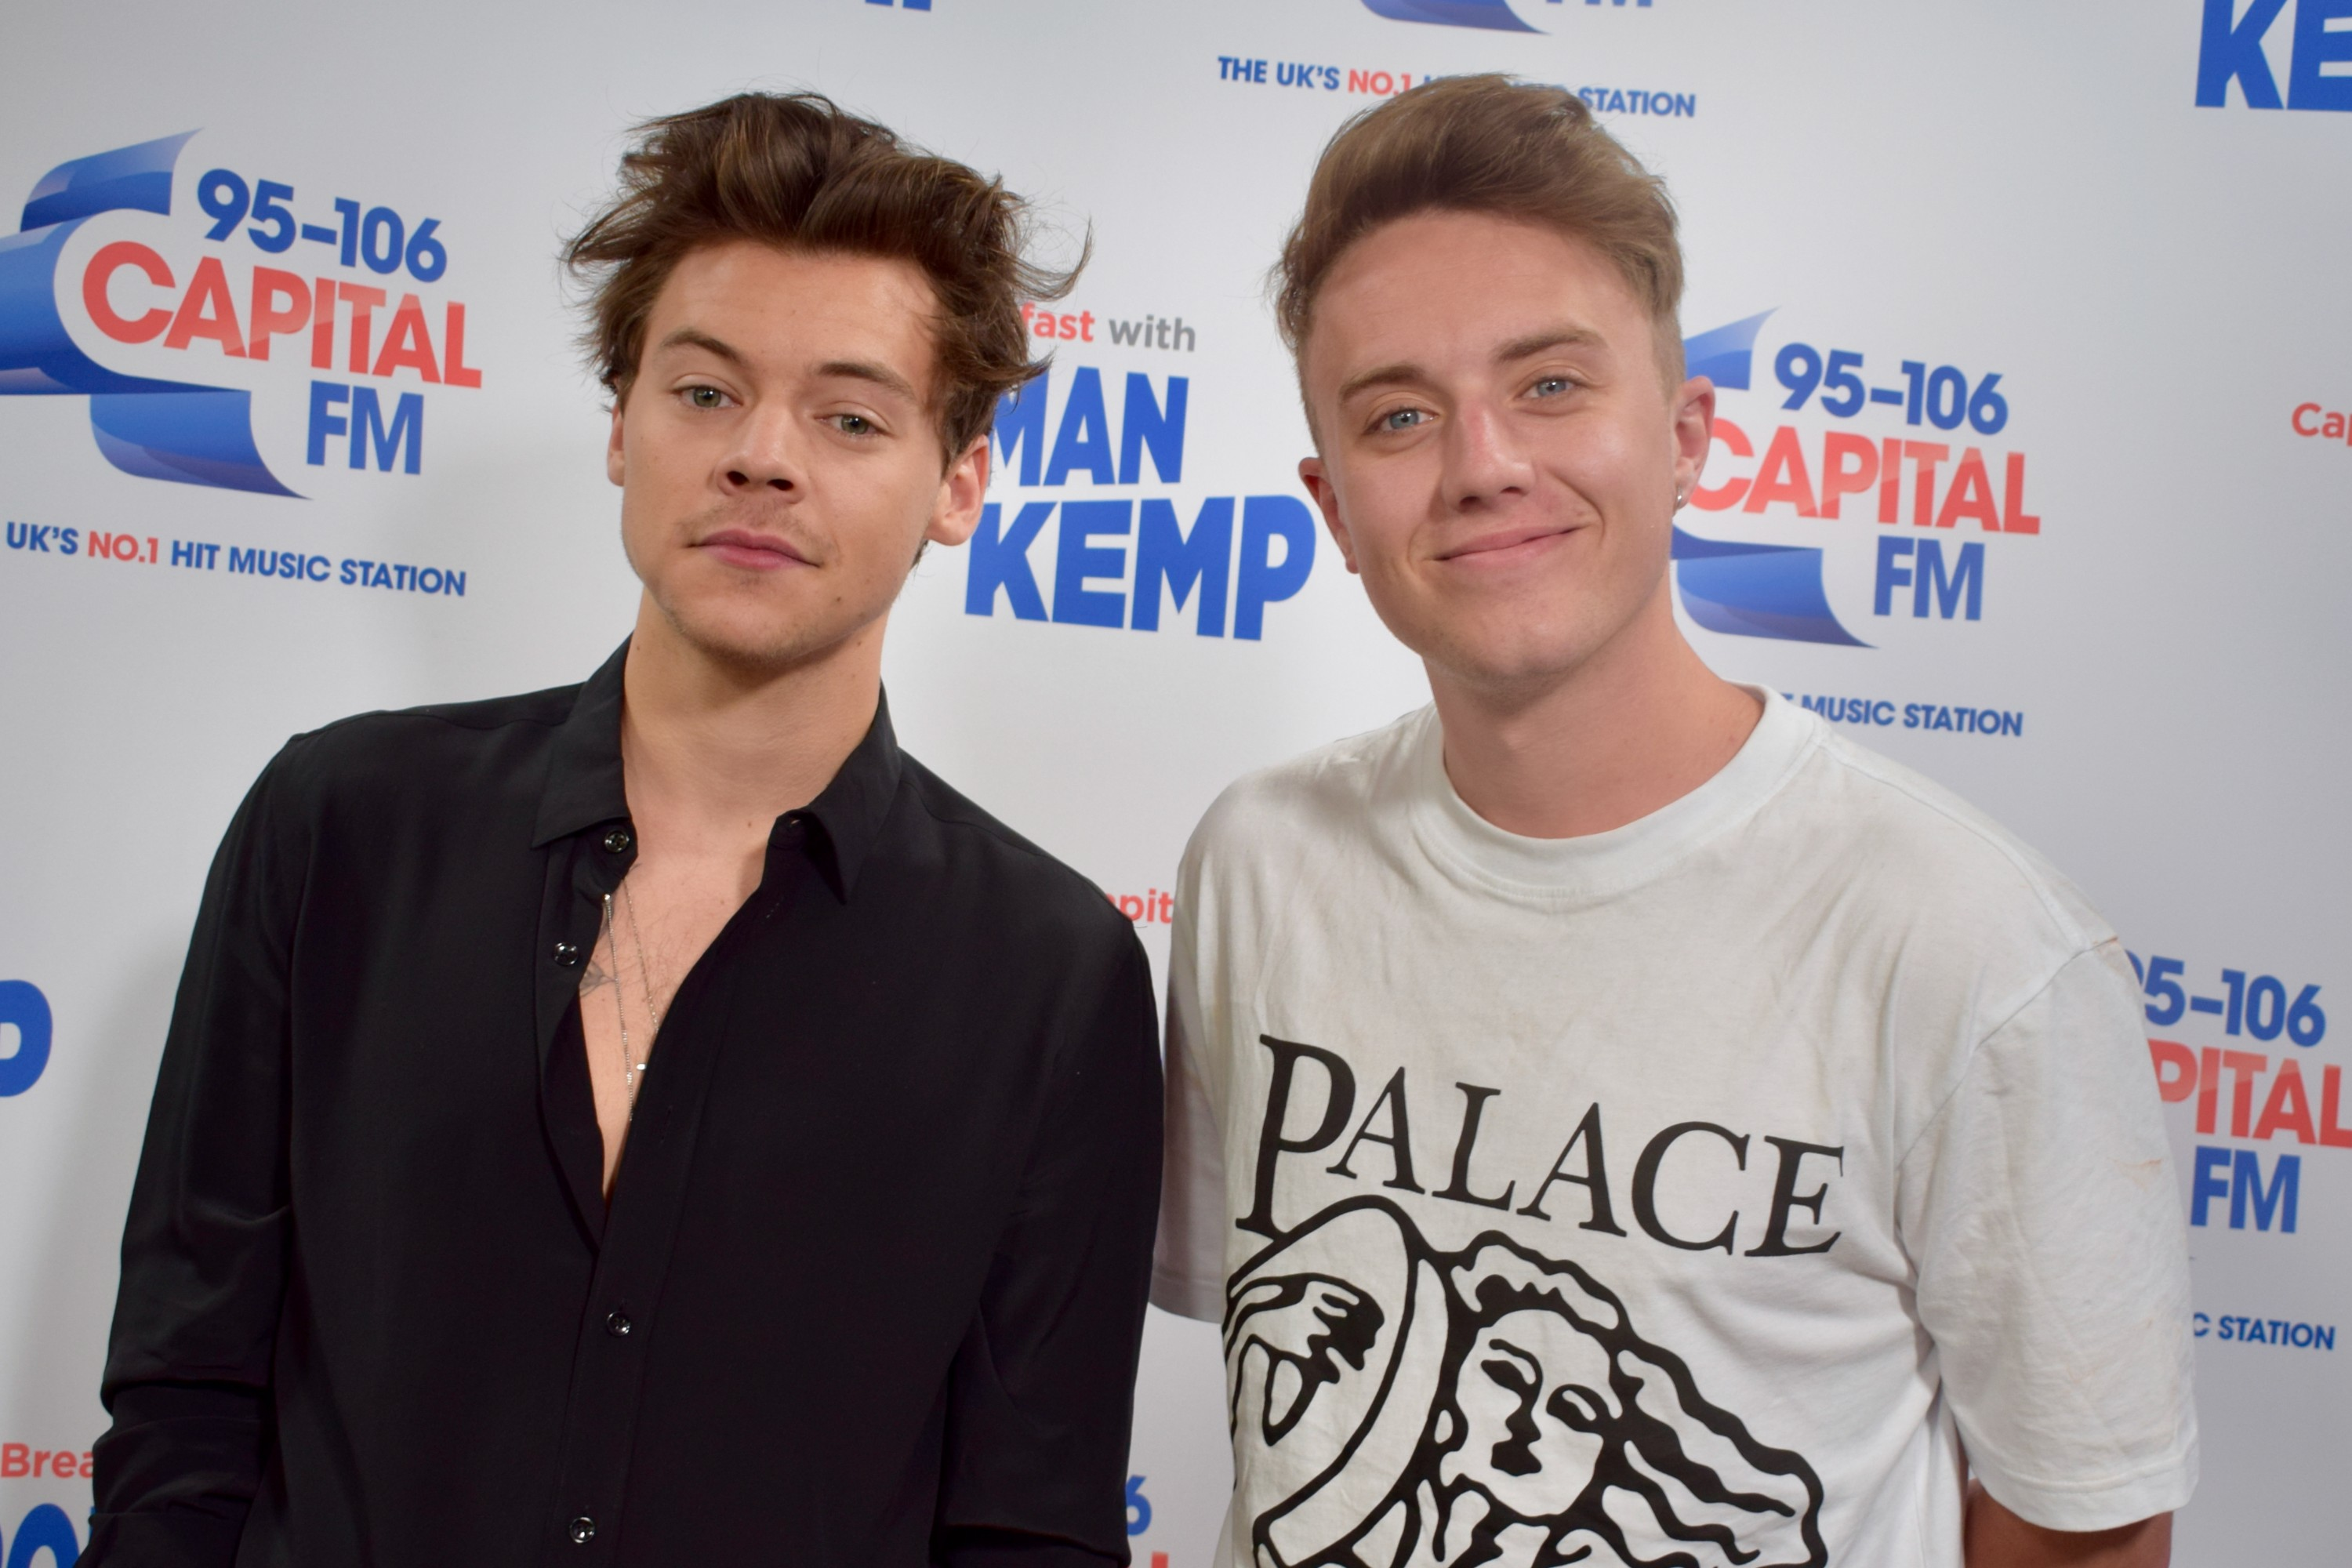 Harry Styles With Roman Kemp